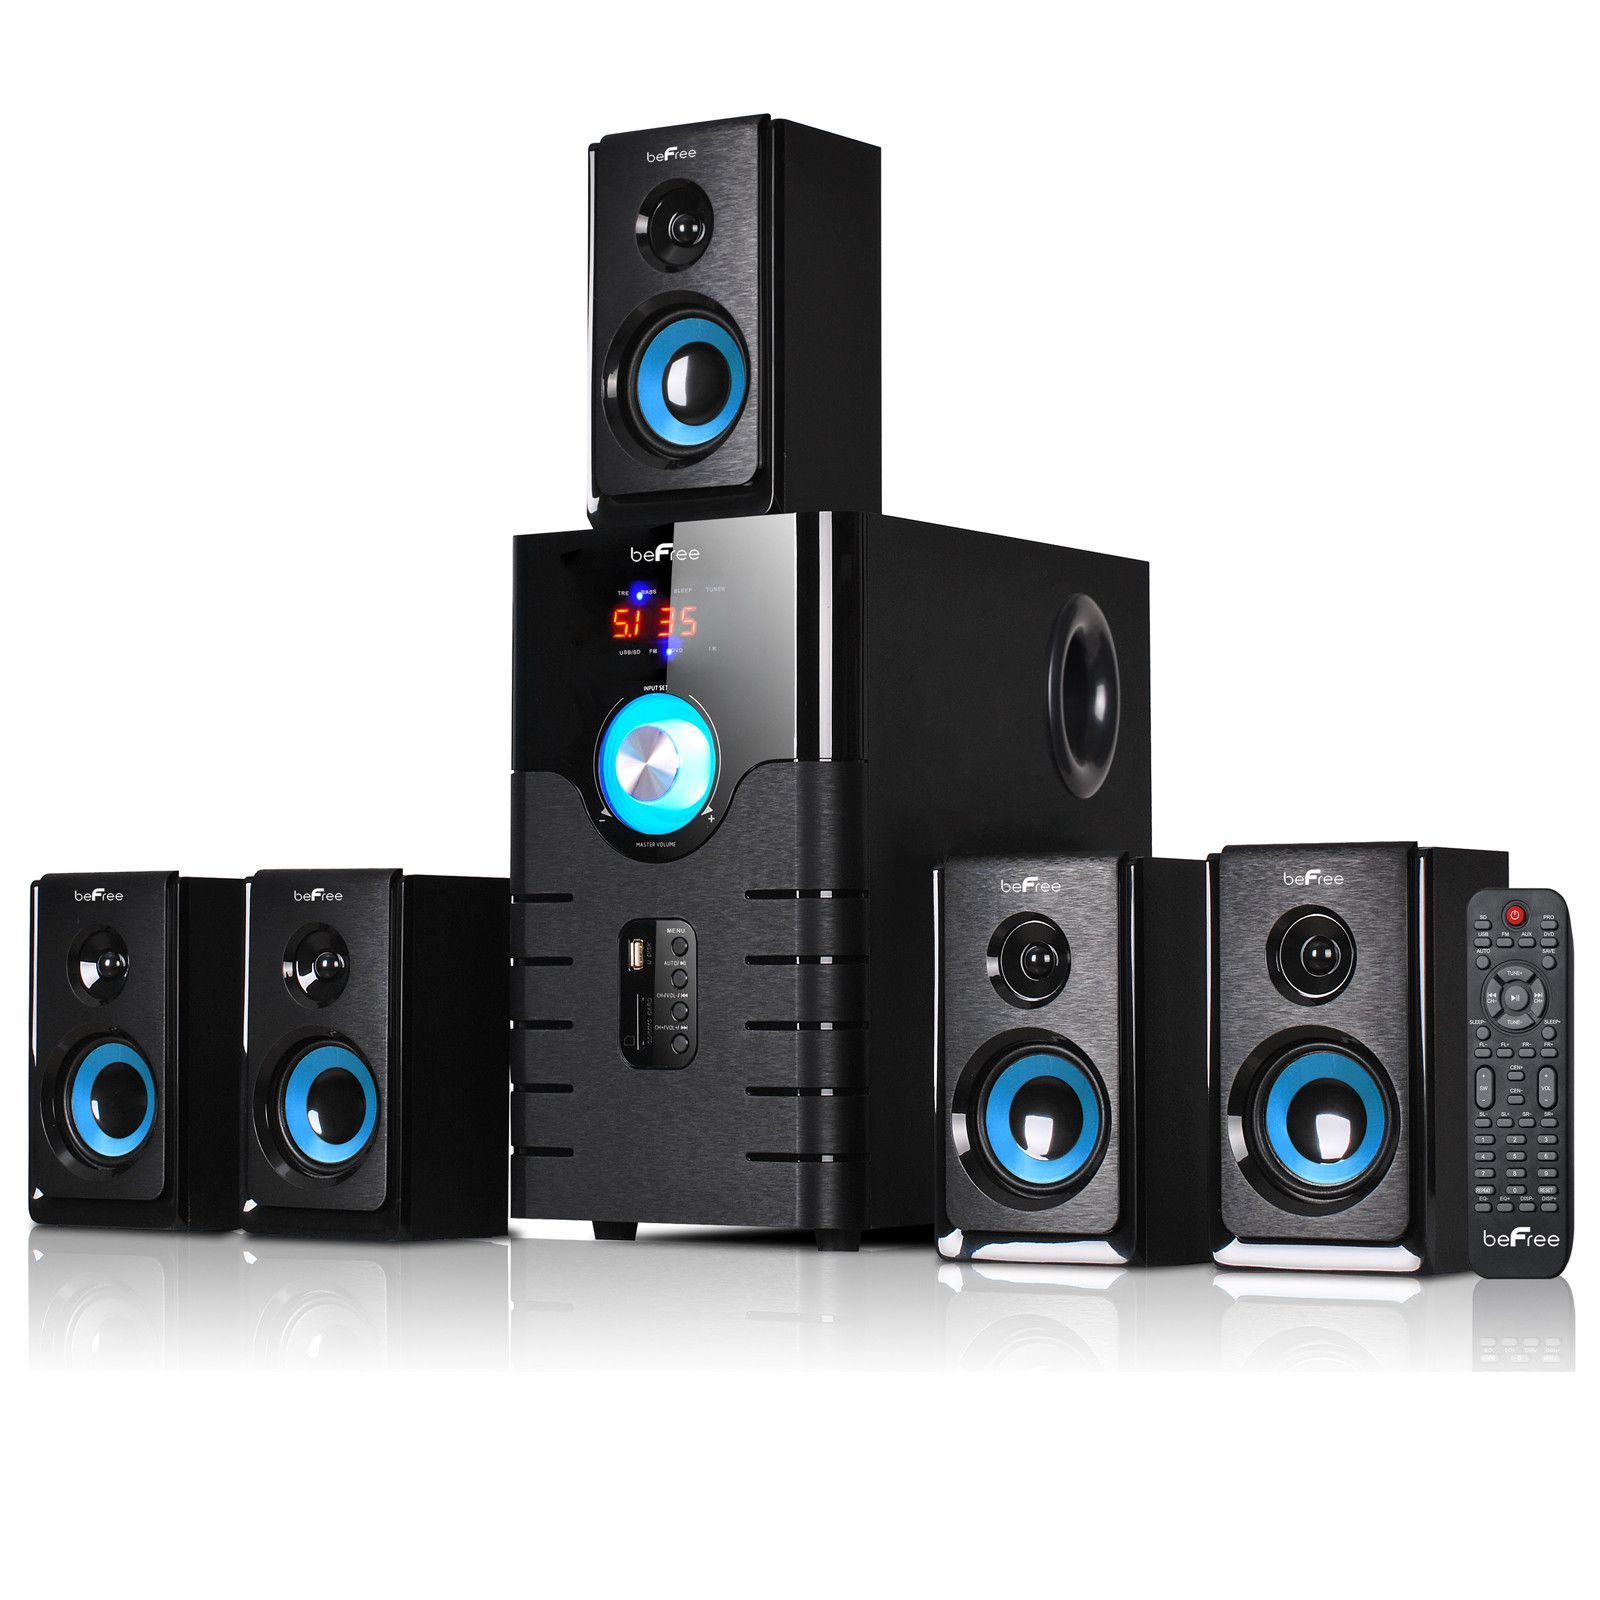 Complete Your Home Theater Experience With Stunning Sound From This Making 51 Surround Amplifier Channel Bluetooth Speaker System Connect A Tv Dvd Player Video Game